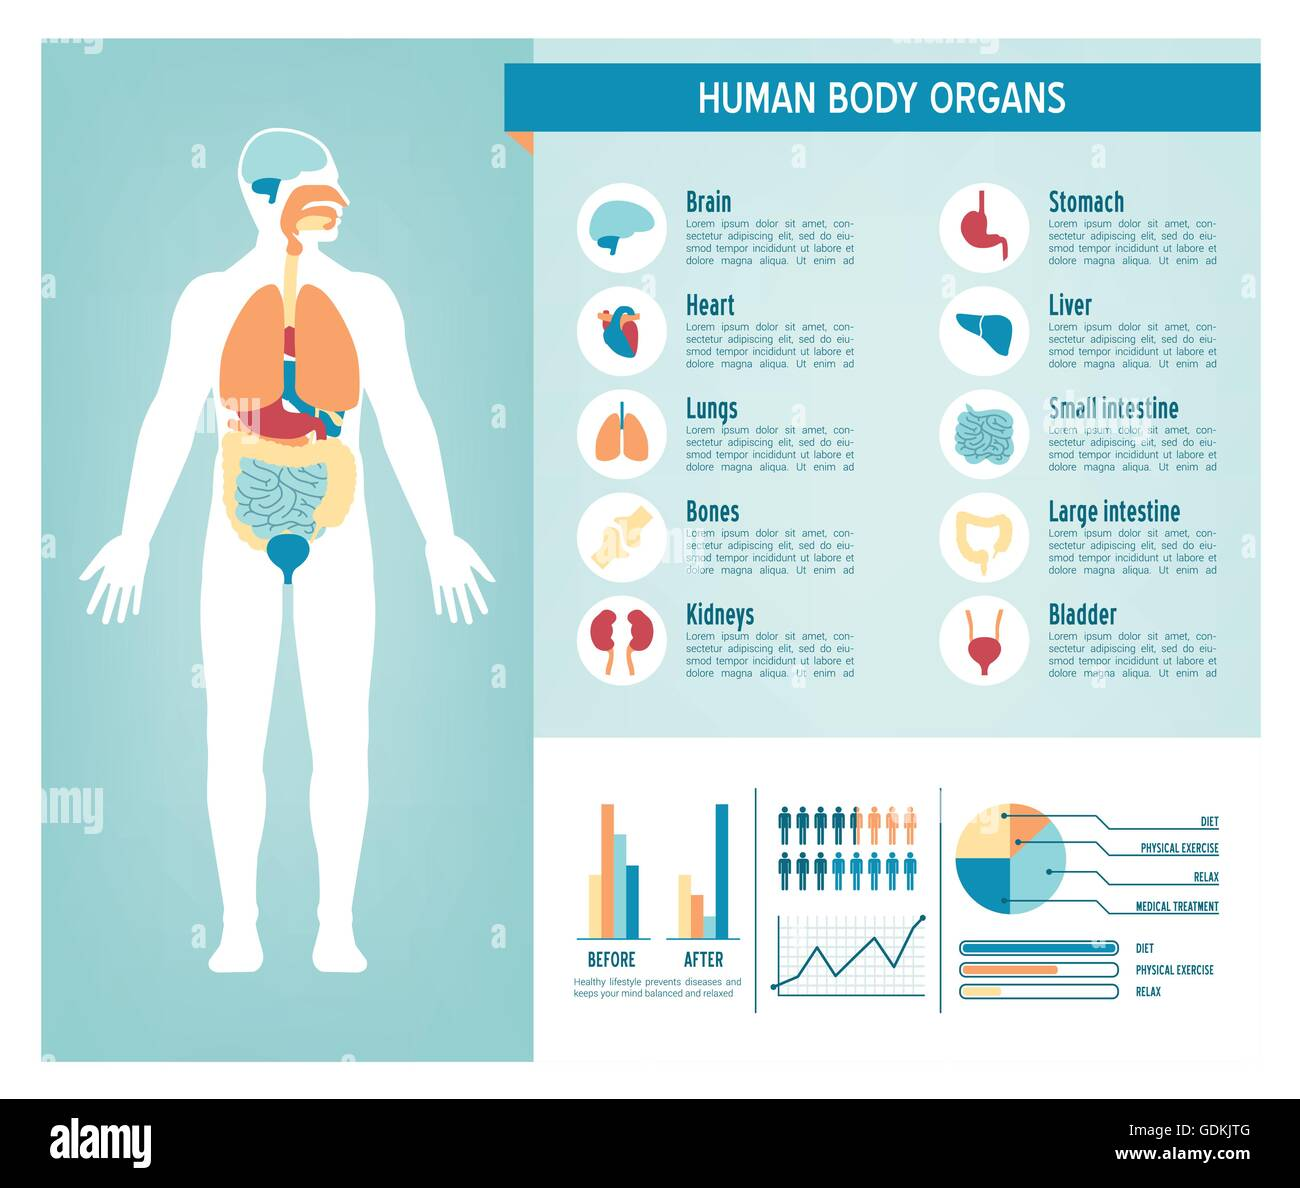 Human Body Organs Diagram Stock Photos Human Body Organs Diagram